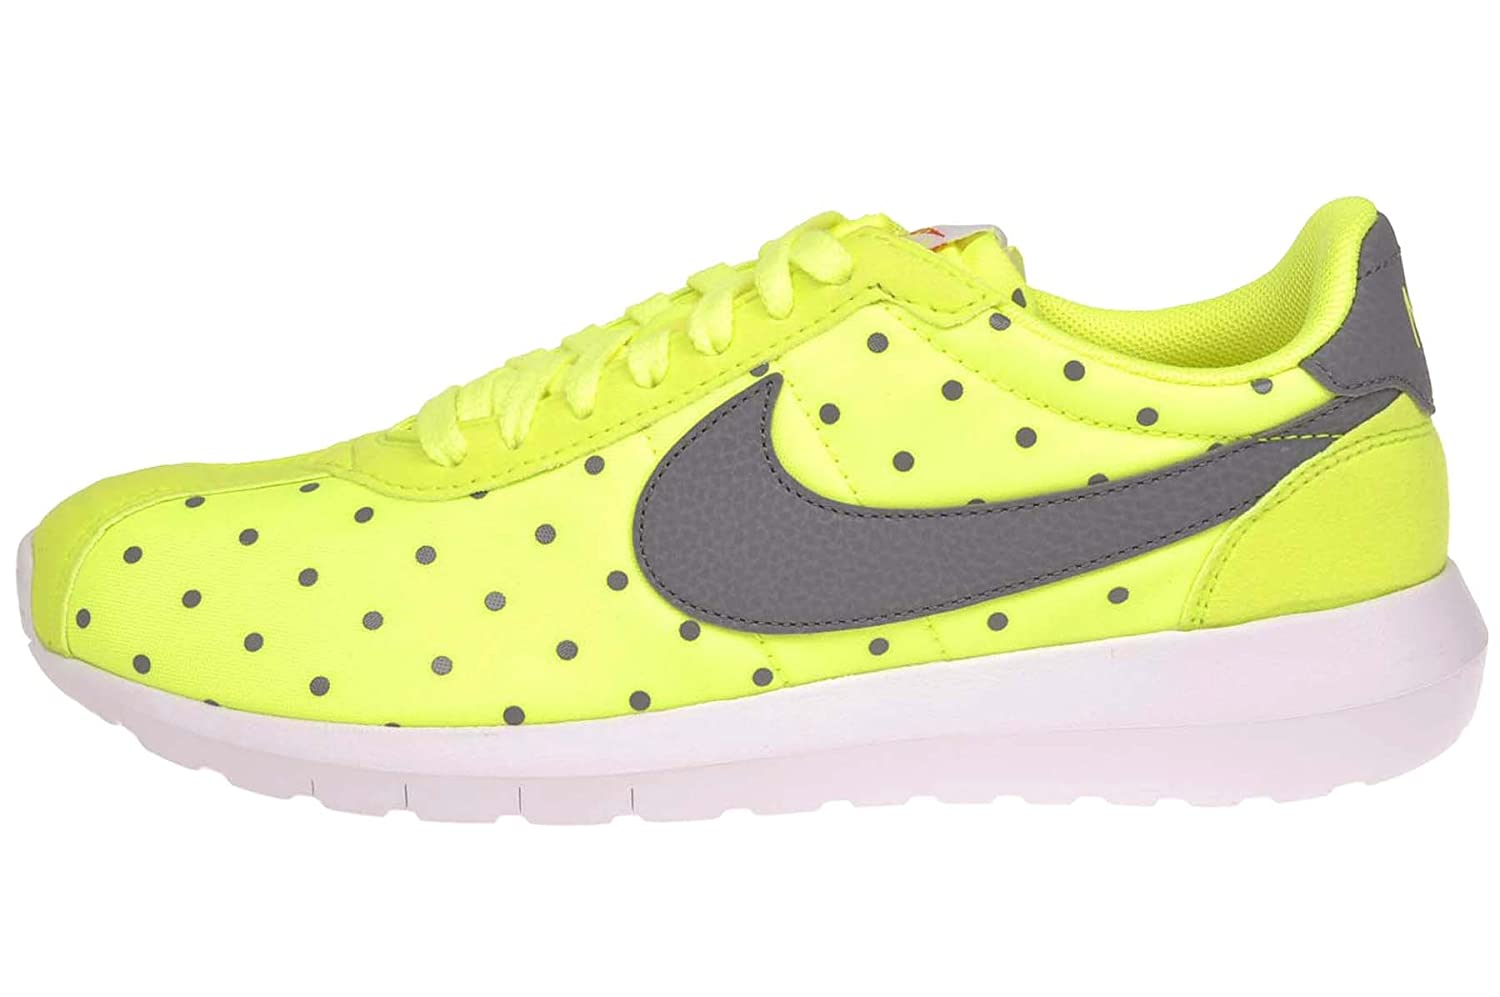 buy popular ada30 3a4aa Amazon.com   Nike Women s W Roshe LD-1000 Print, Volt Cool  Grey-White-Safety Orange, 5.5 M US   Road Running